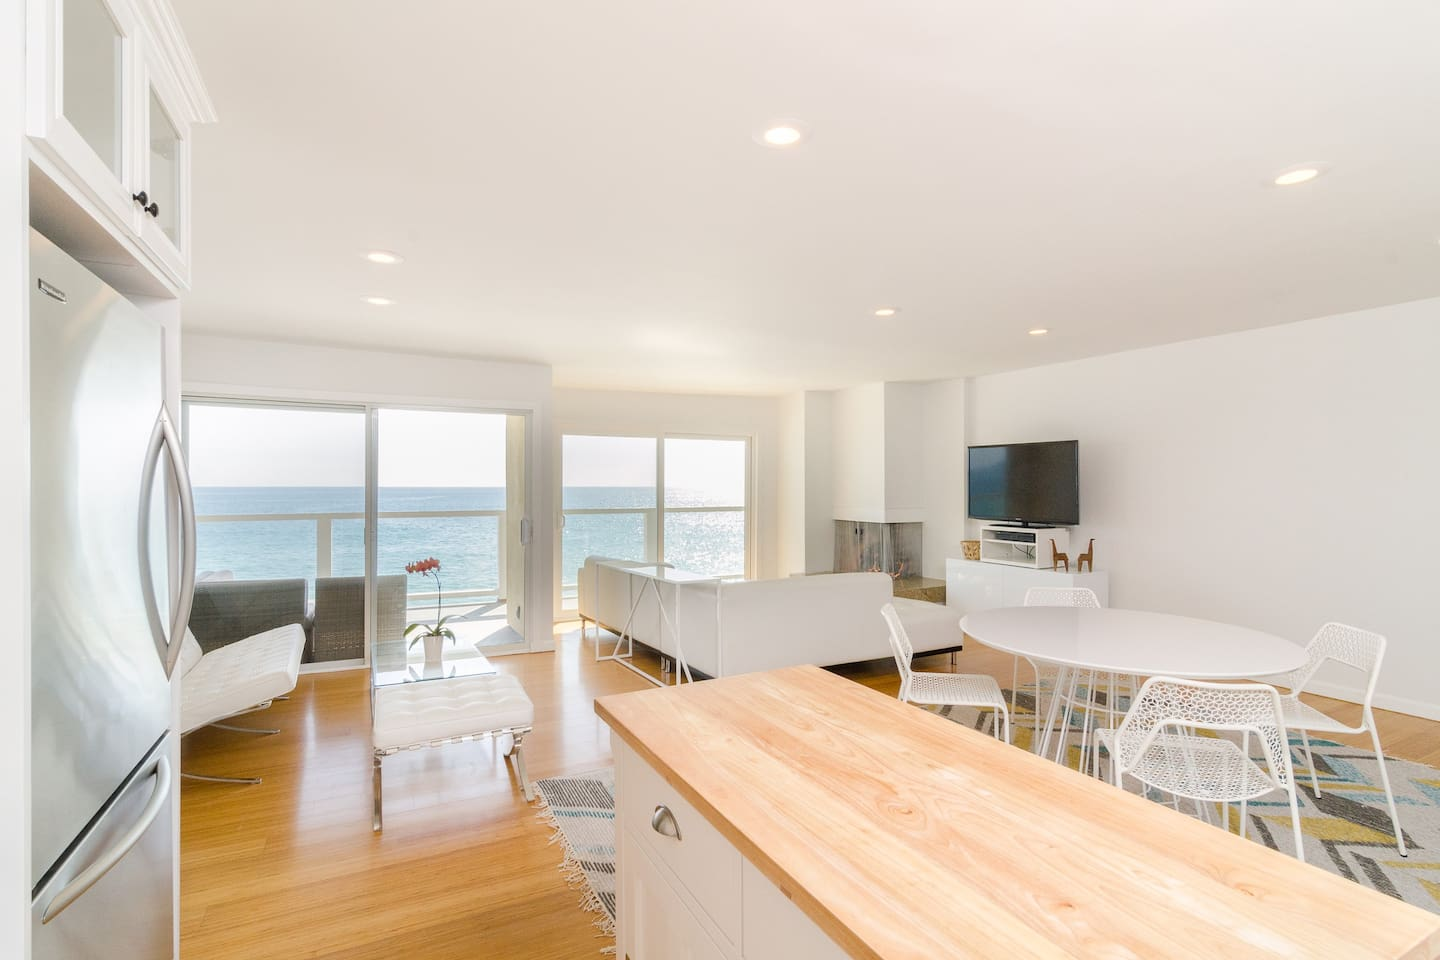 Clean, modern luxurious unit with unobstructed oceanfront views